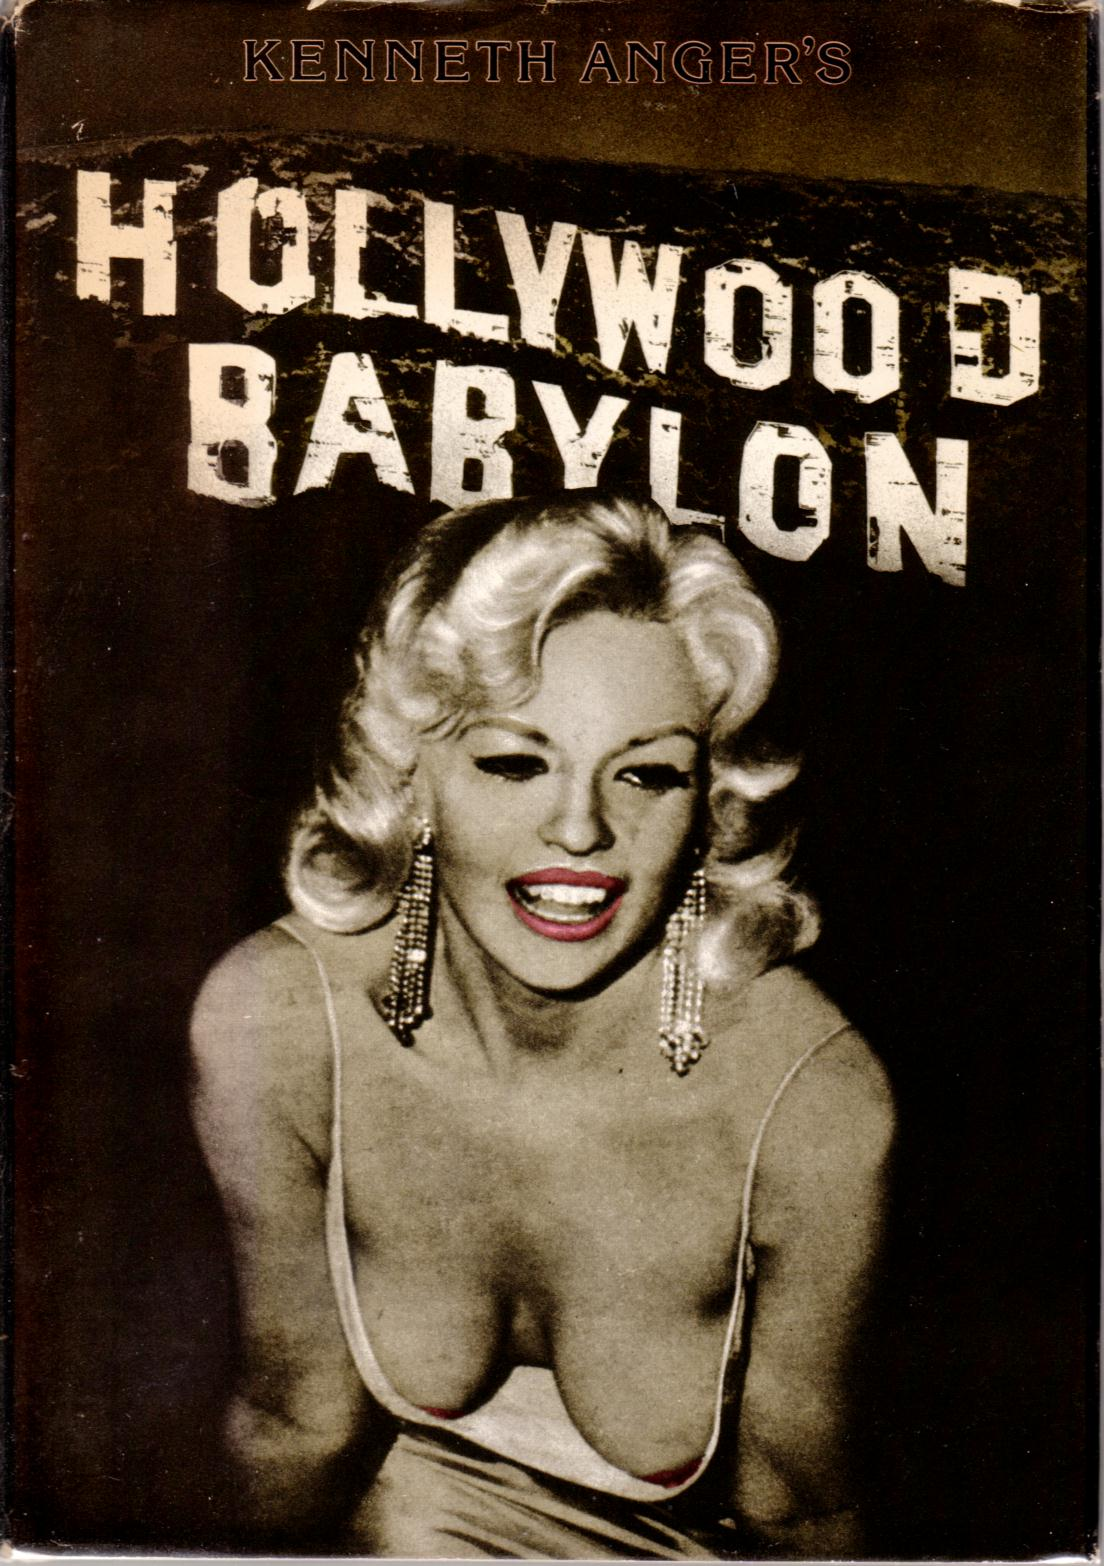 Thelma todd hollywood babylon covergirl for How old was jayne mansfield when she died